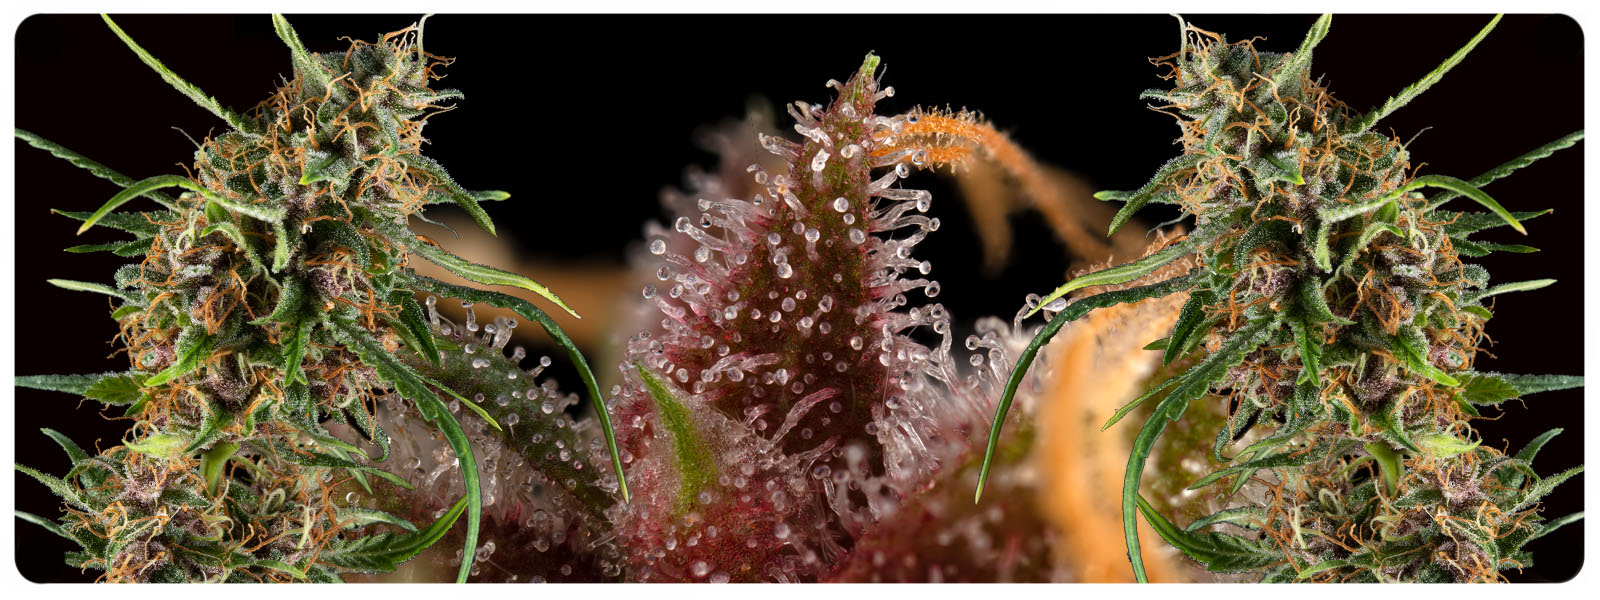 Selen bud full of colours and trichomes